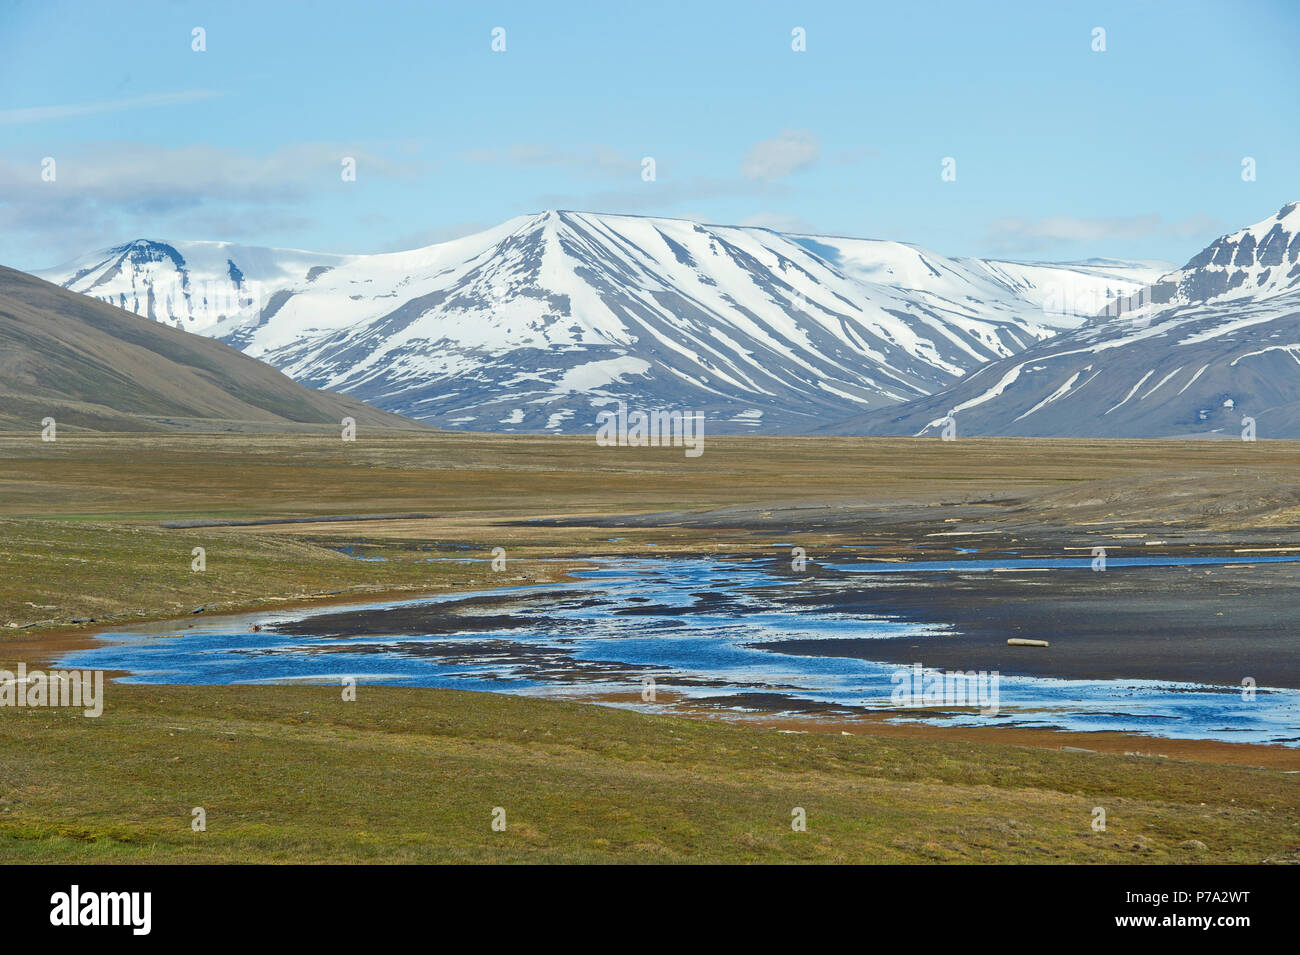 Artic Tundra scene on Spitsbergen, Svalbard, Norway in the Arctic Circle - Stock Image